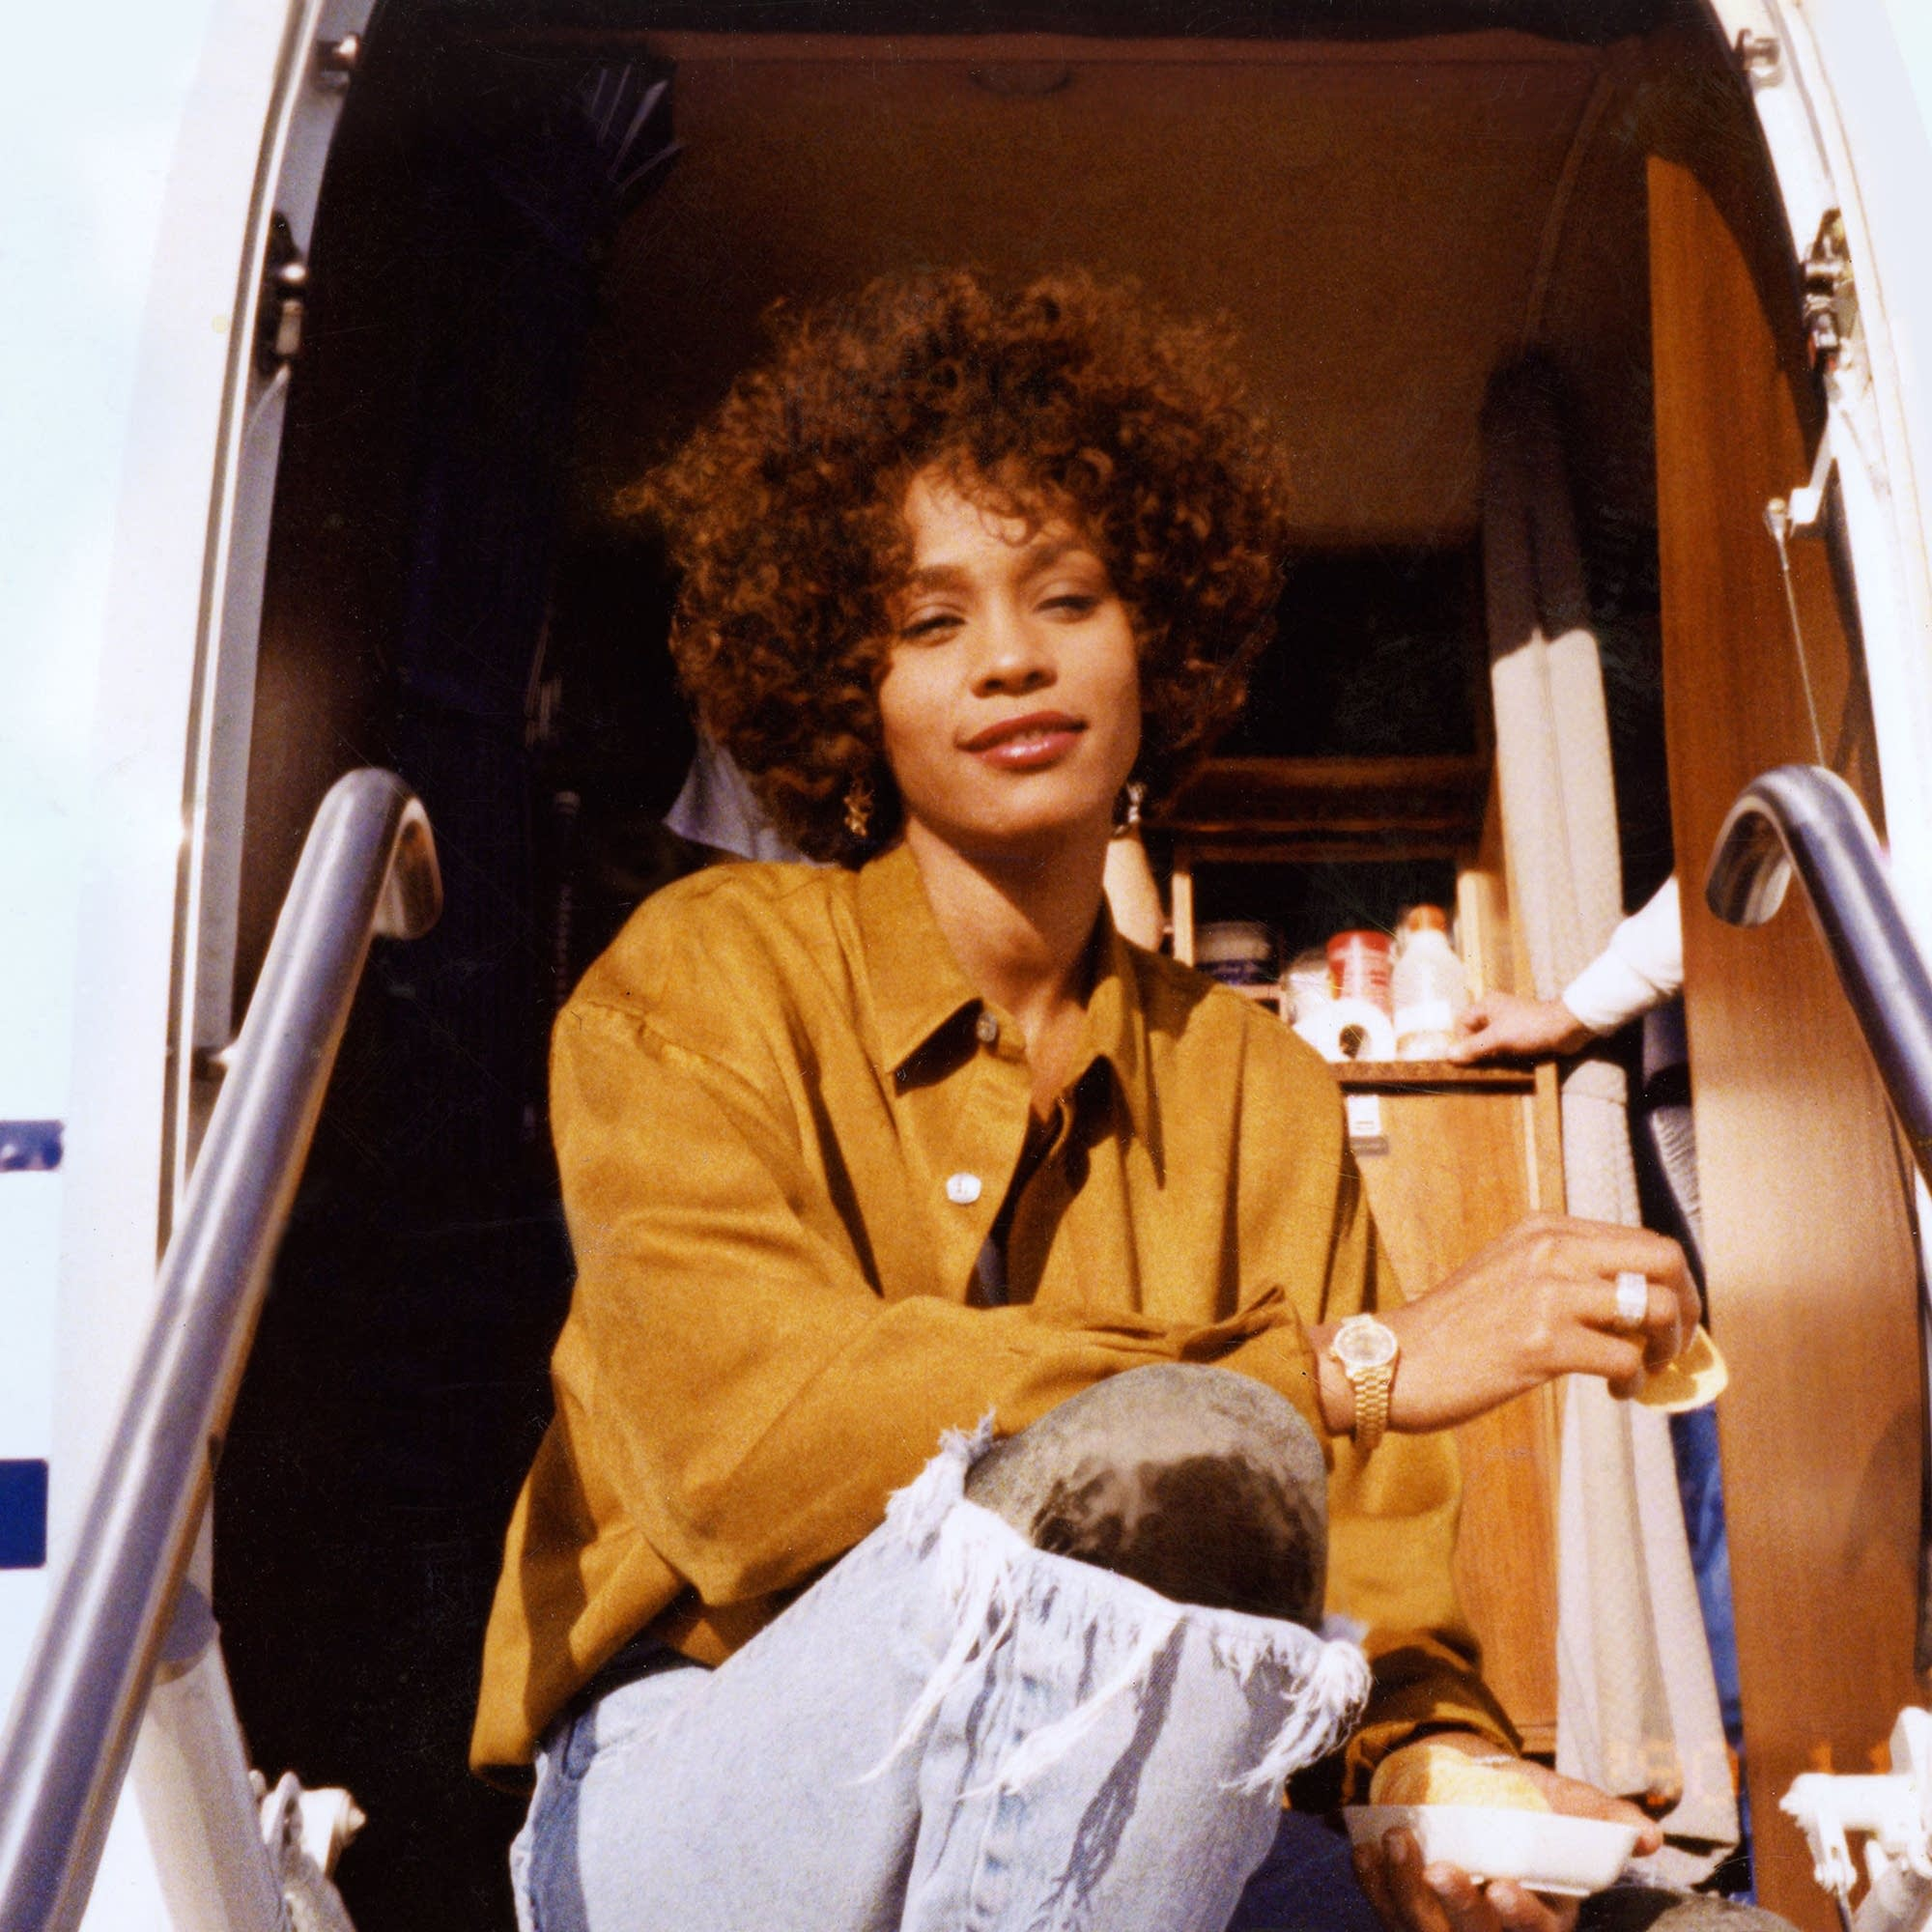 A photo of Whitney Houston from the film WHITNEY